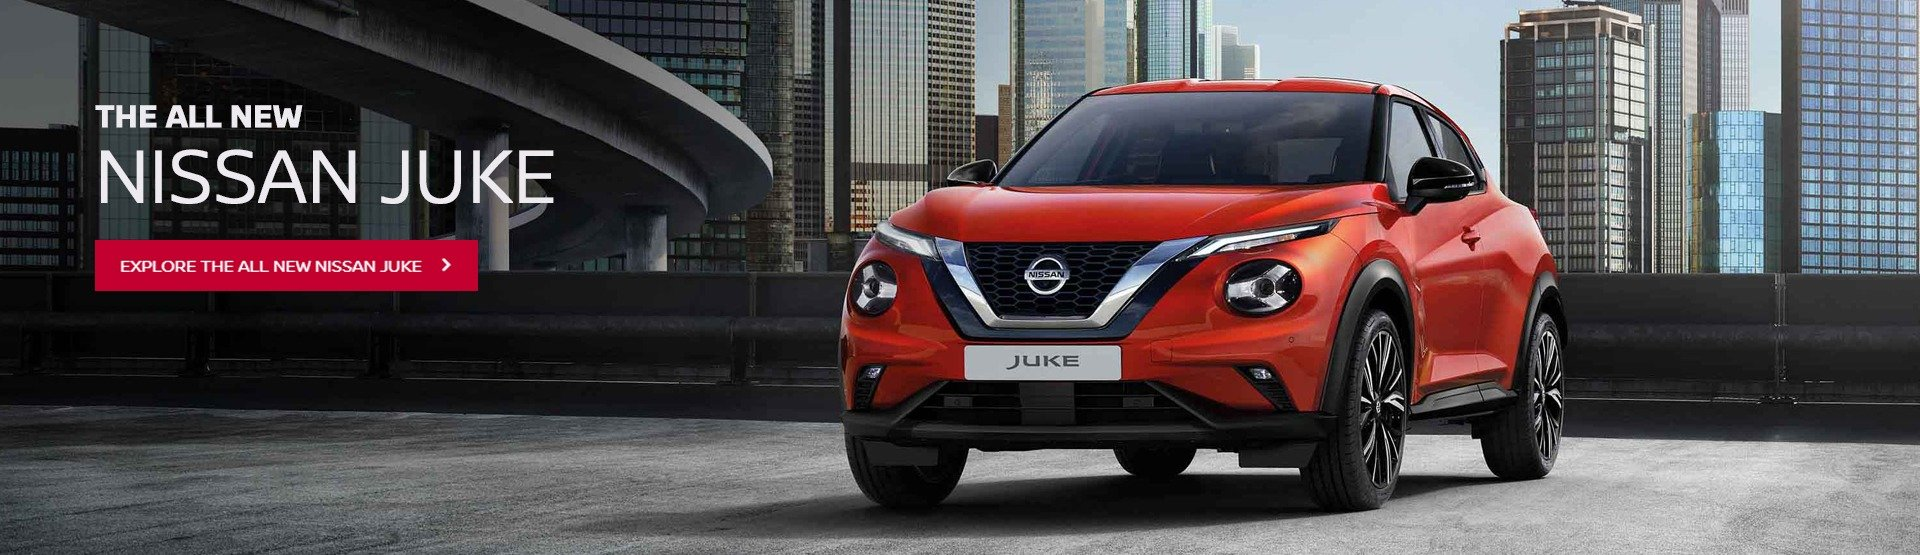 All New Nissan Juke